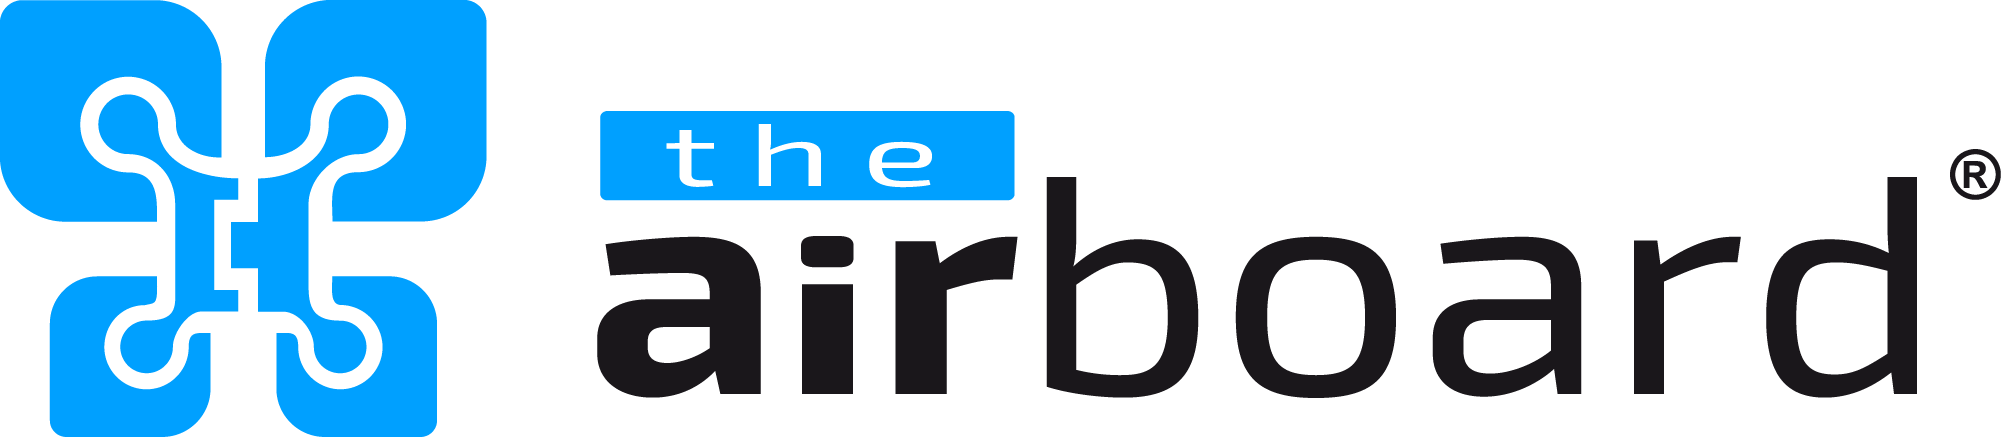 The Airboard